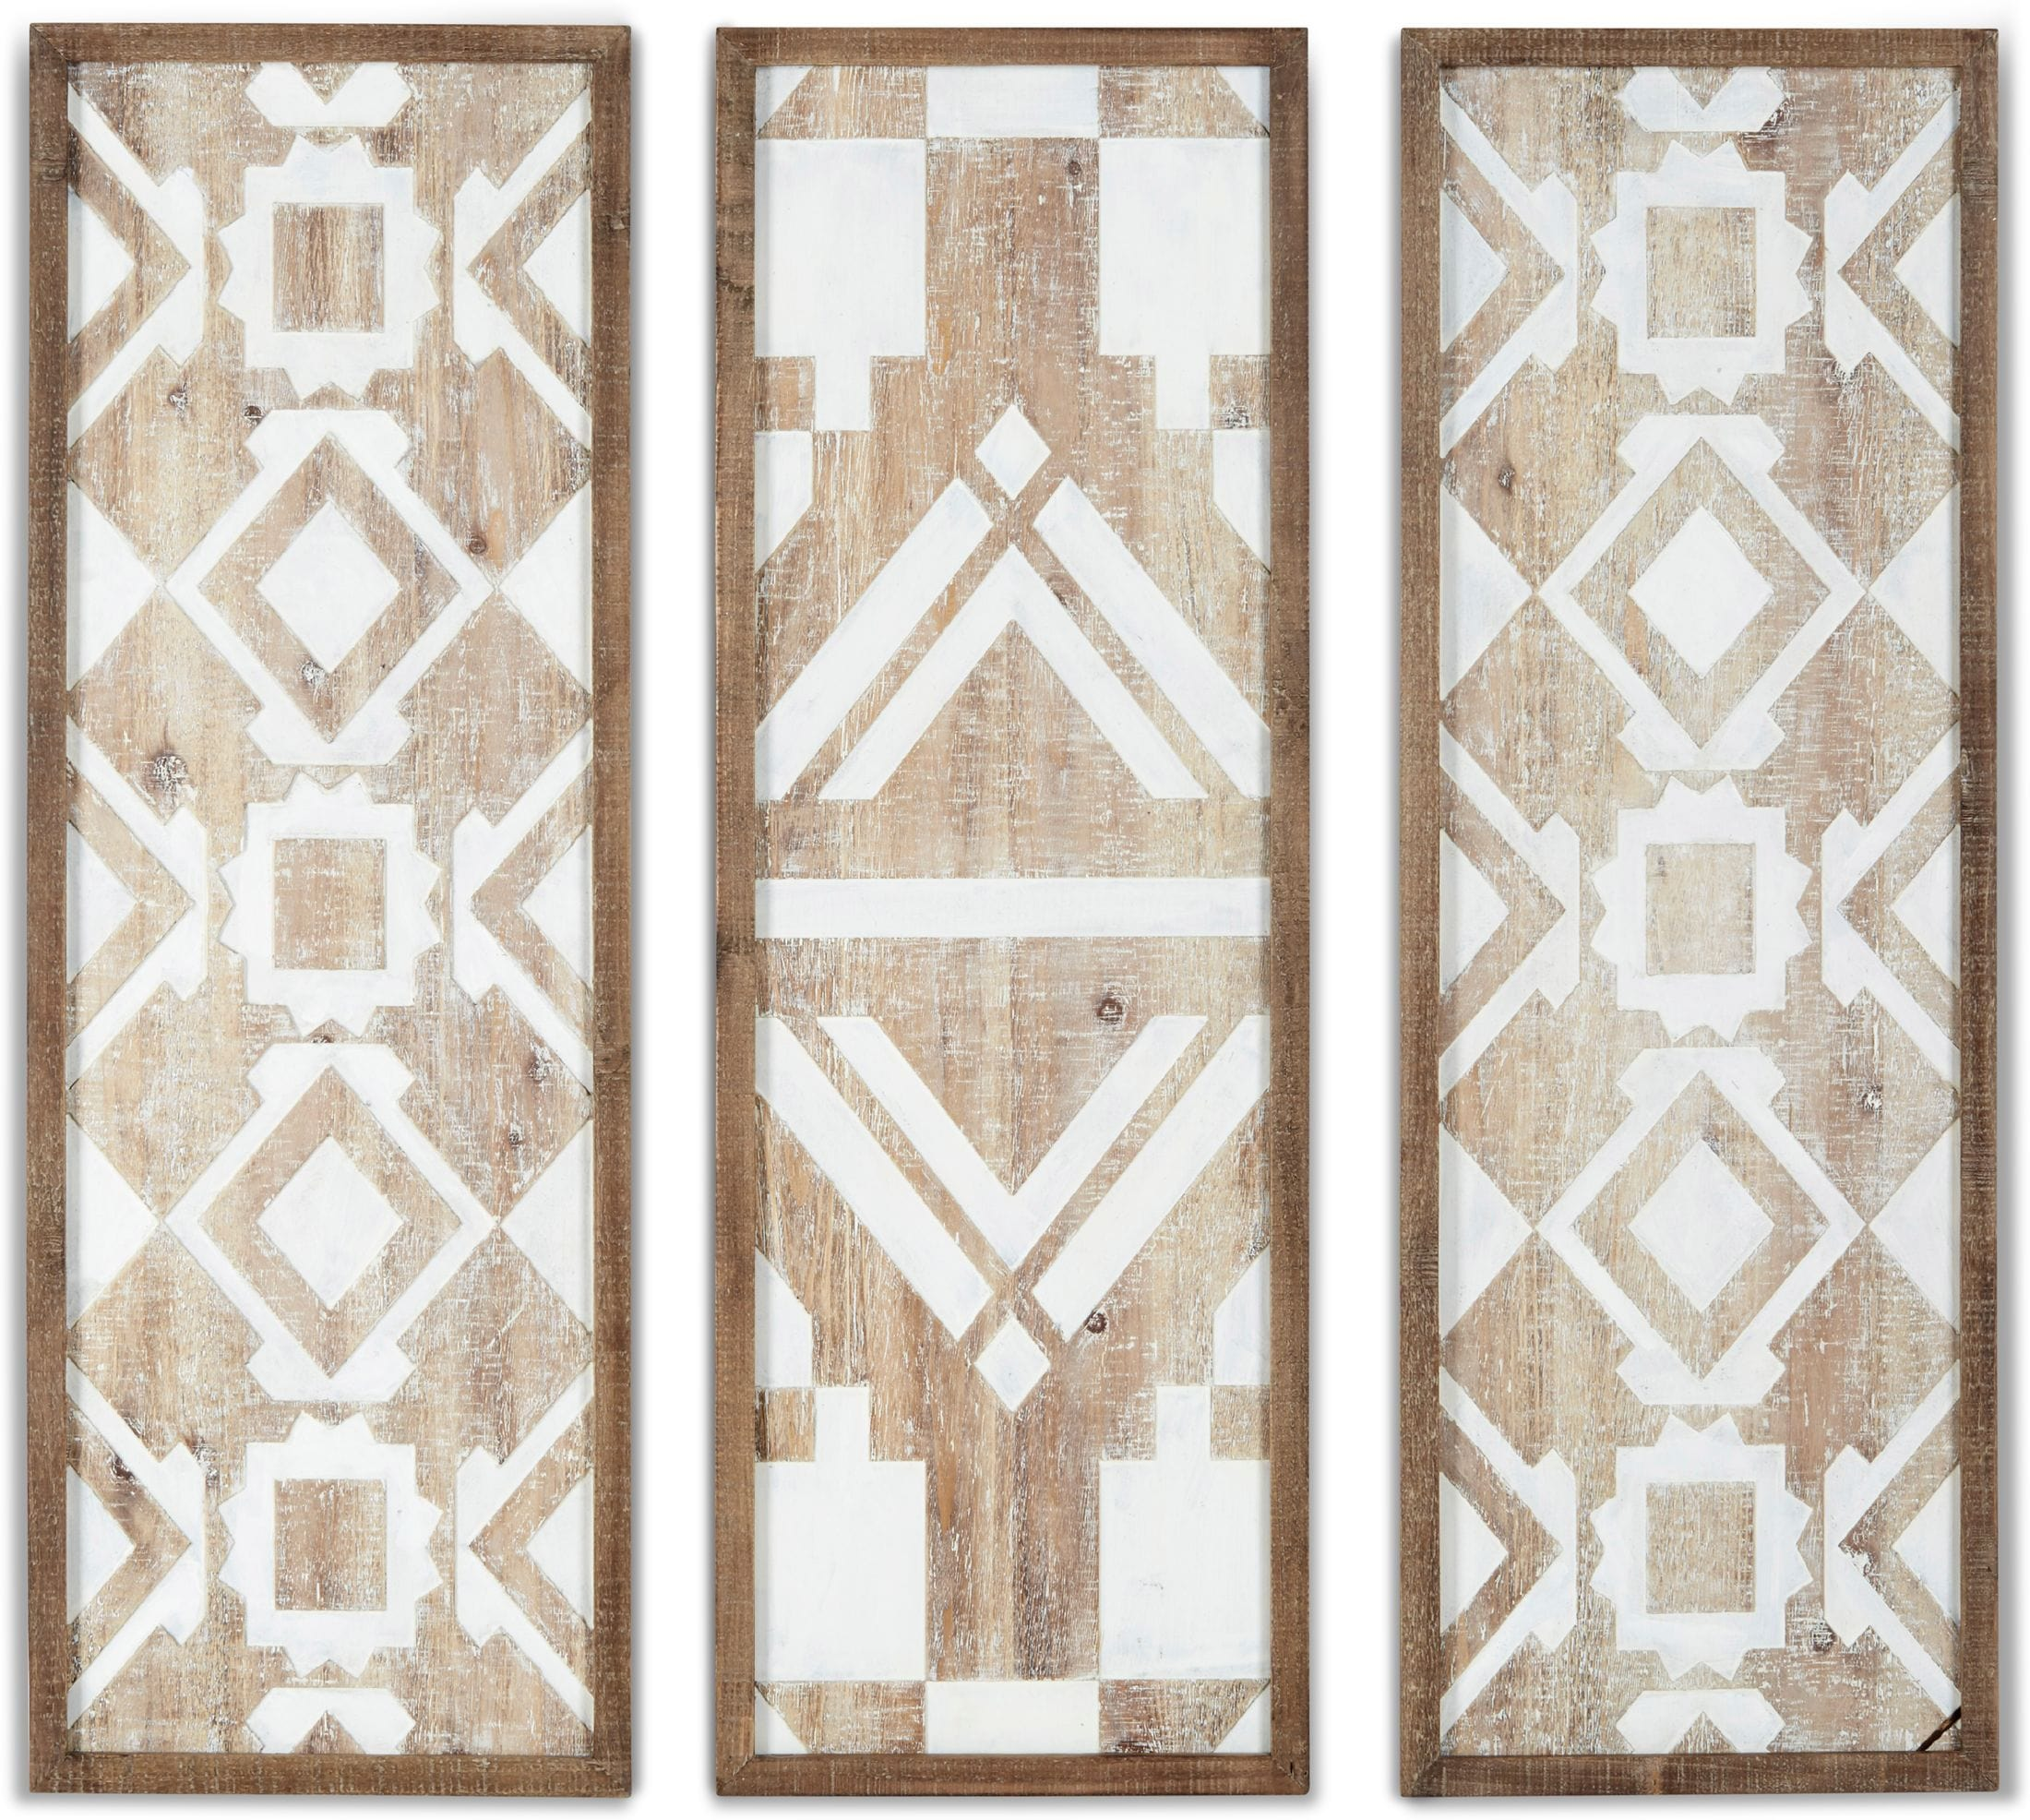 Home Accessories - Blakely 3-Piece Printed Wall Art